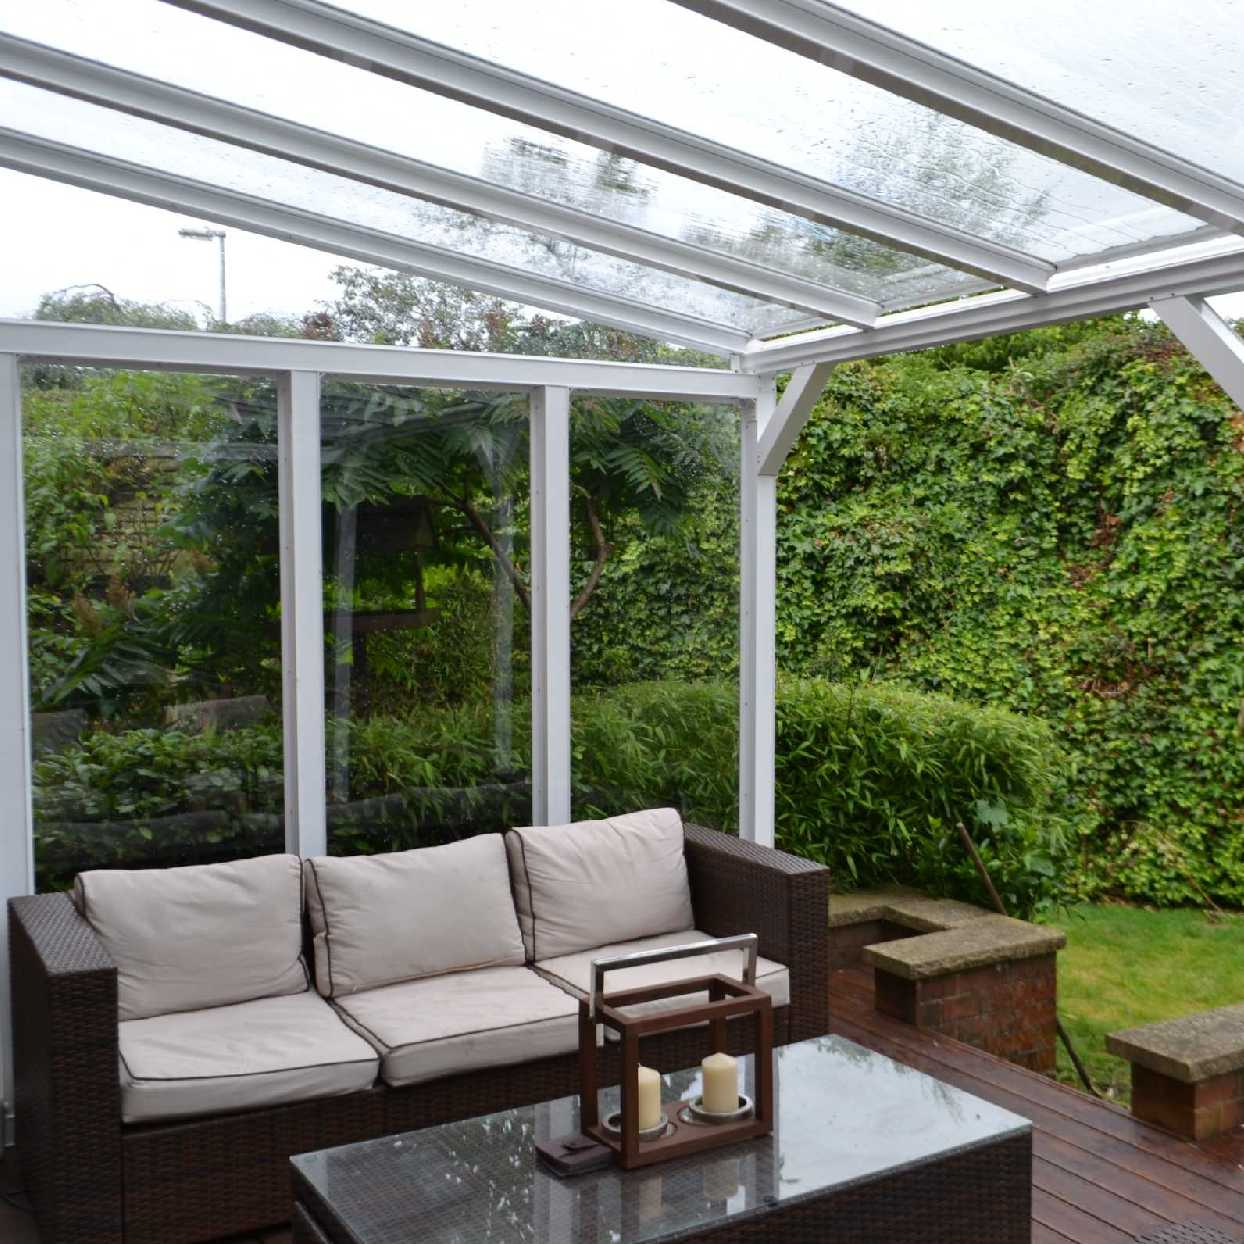 Omega Smart White Lean-To Canopy with 6mm Glass Clear Plate Polycarbonate Glazing - 2.8m (W) x 2.5m (P), (2) Supporting Posts